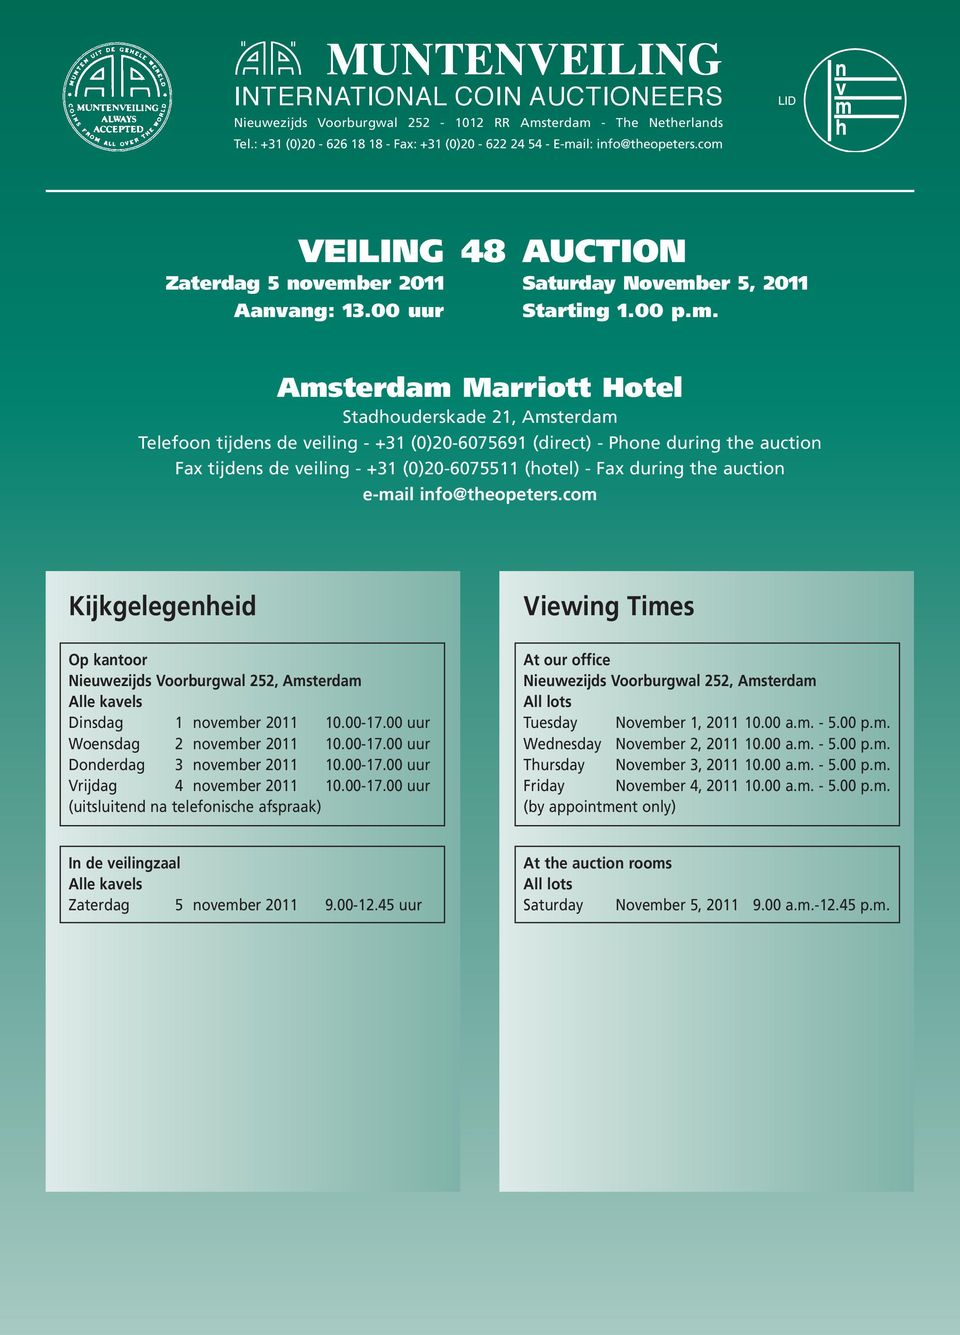 +31 (0)20-6075691 (direct) - Phone during the auction Fax tijdens de veiling - +31 (0)20-6075511 (hotel) - Fax during the auction e-mail info@theopeters.